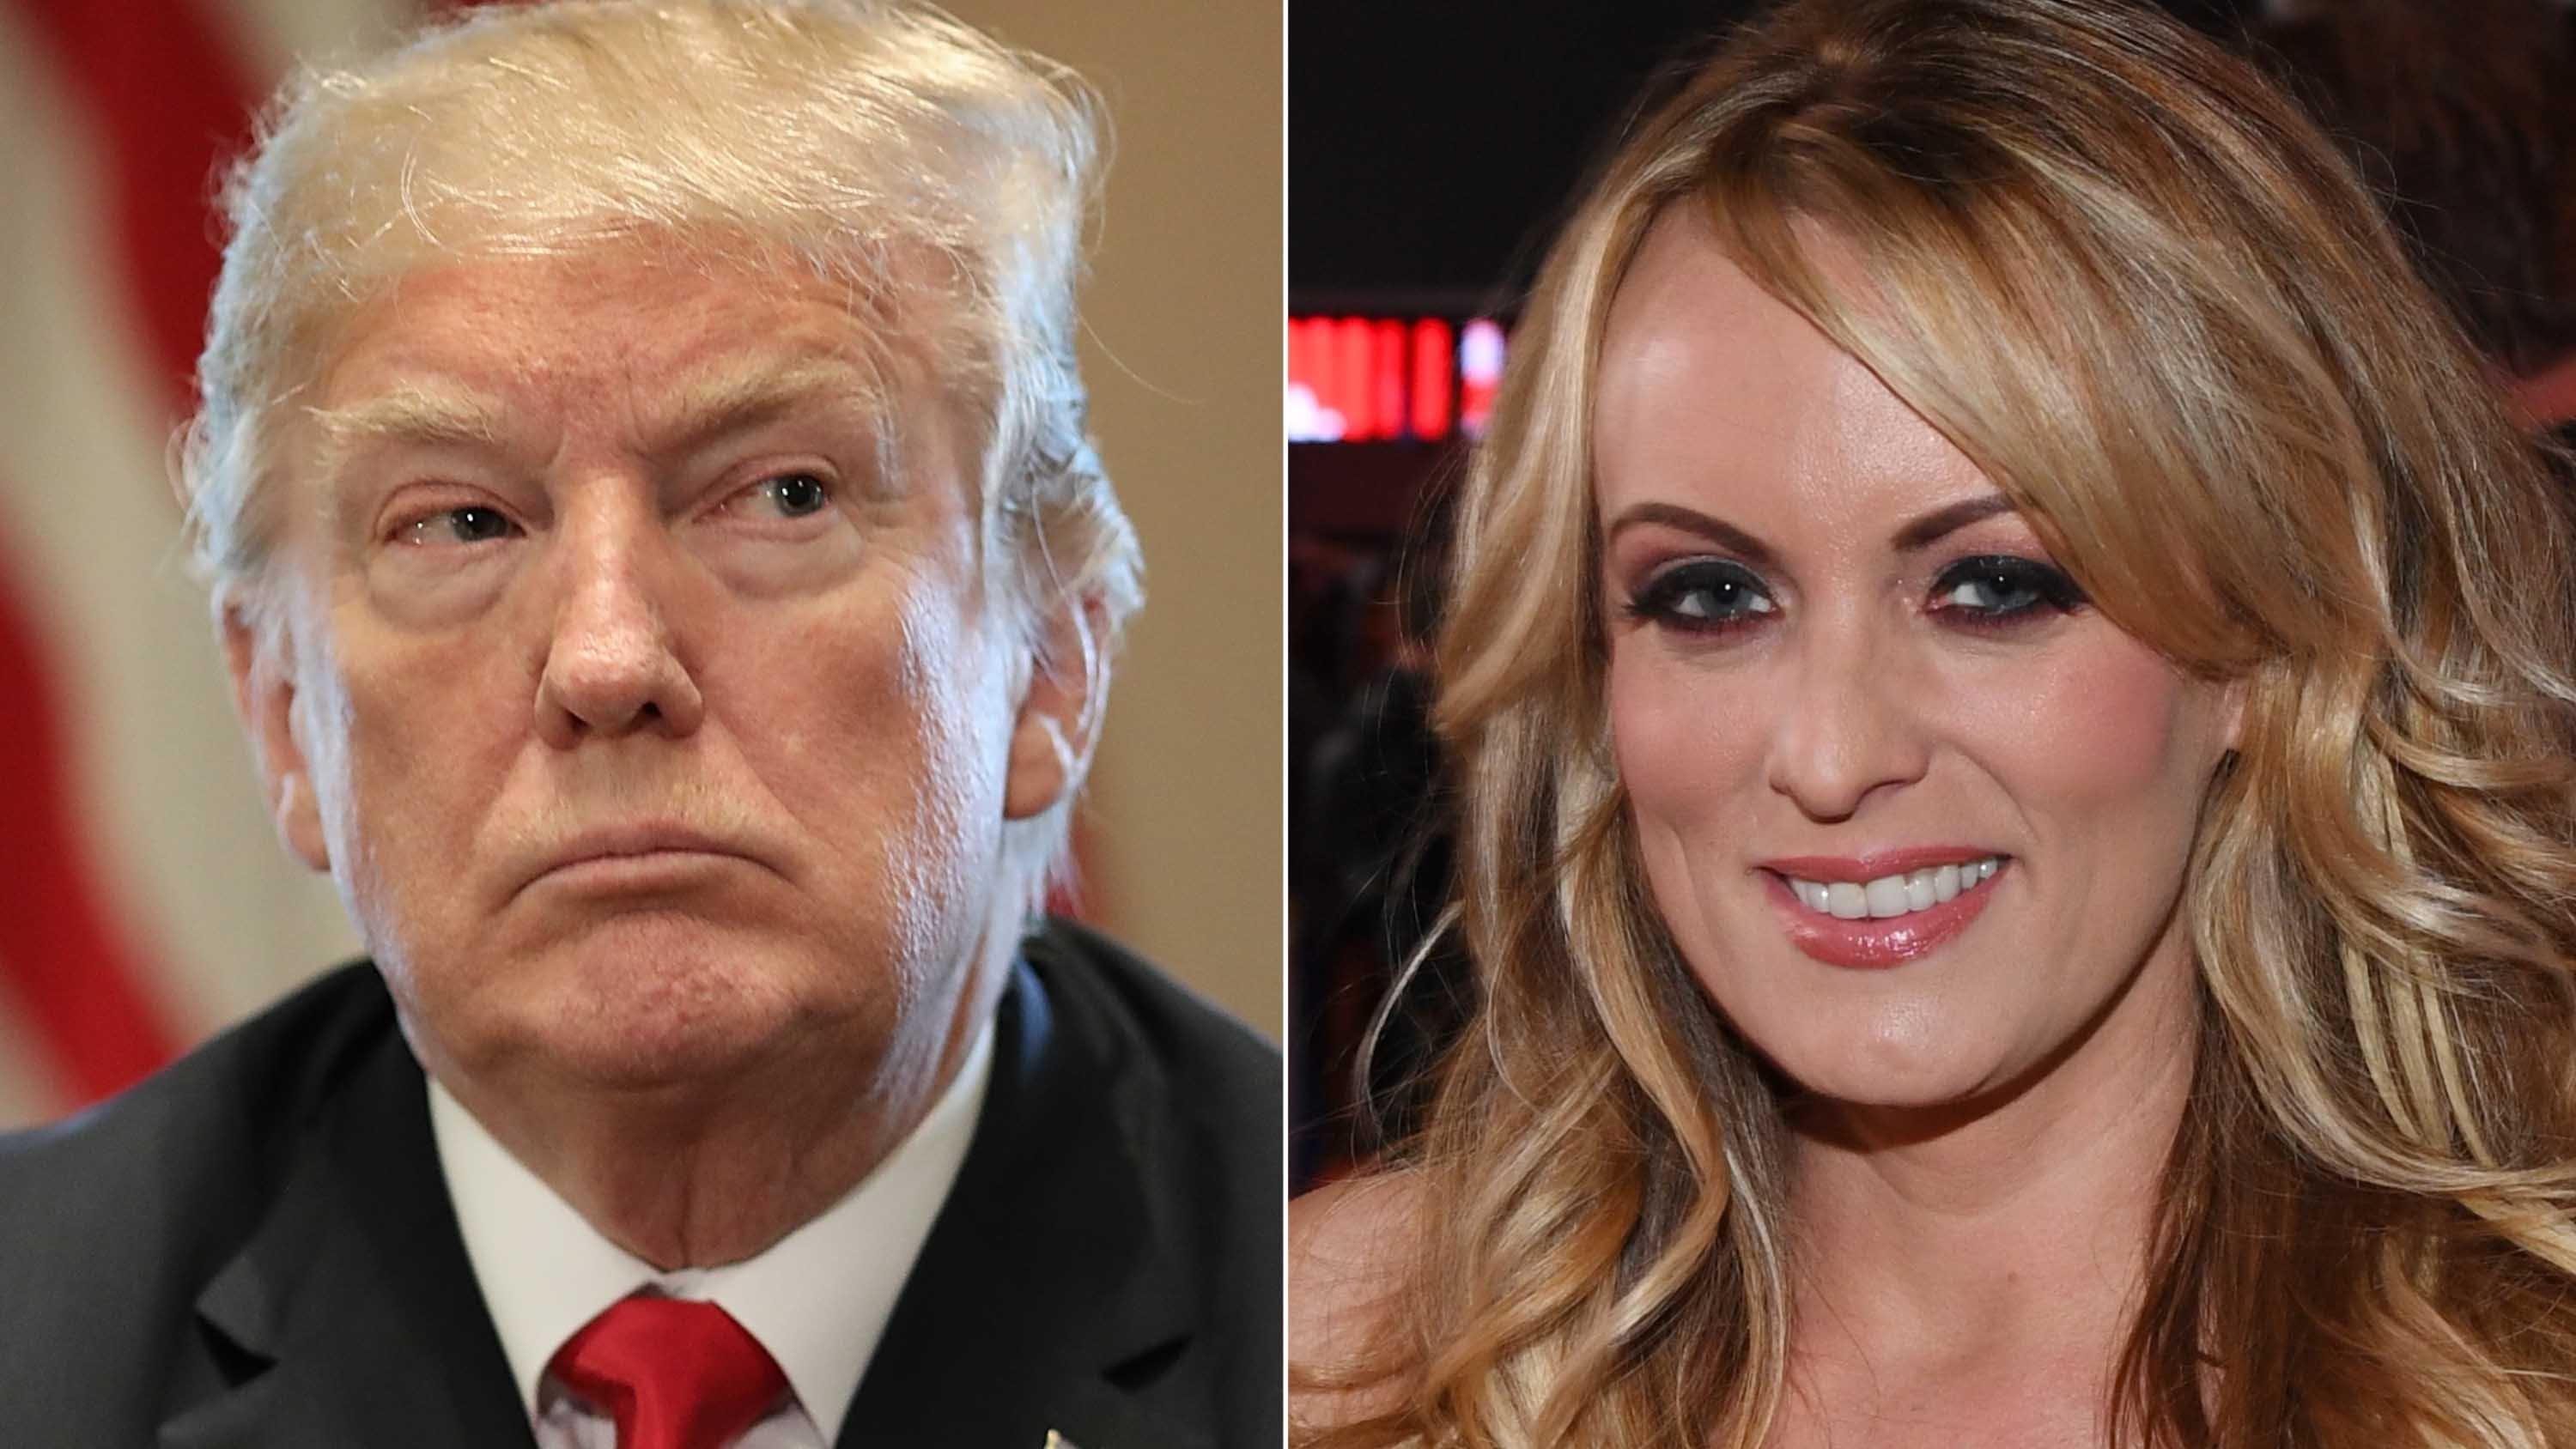 Stormy Daniels is playing Donald Trump at his own game. The adult movie star, who claims she had an affair with Trump and was paid $130,000 to stay quiet before the election by the President's lawyer, has drawn the White House into a politically...